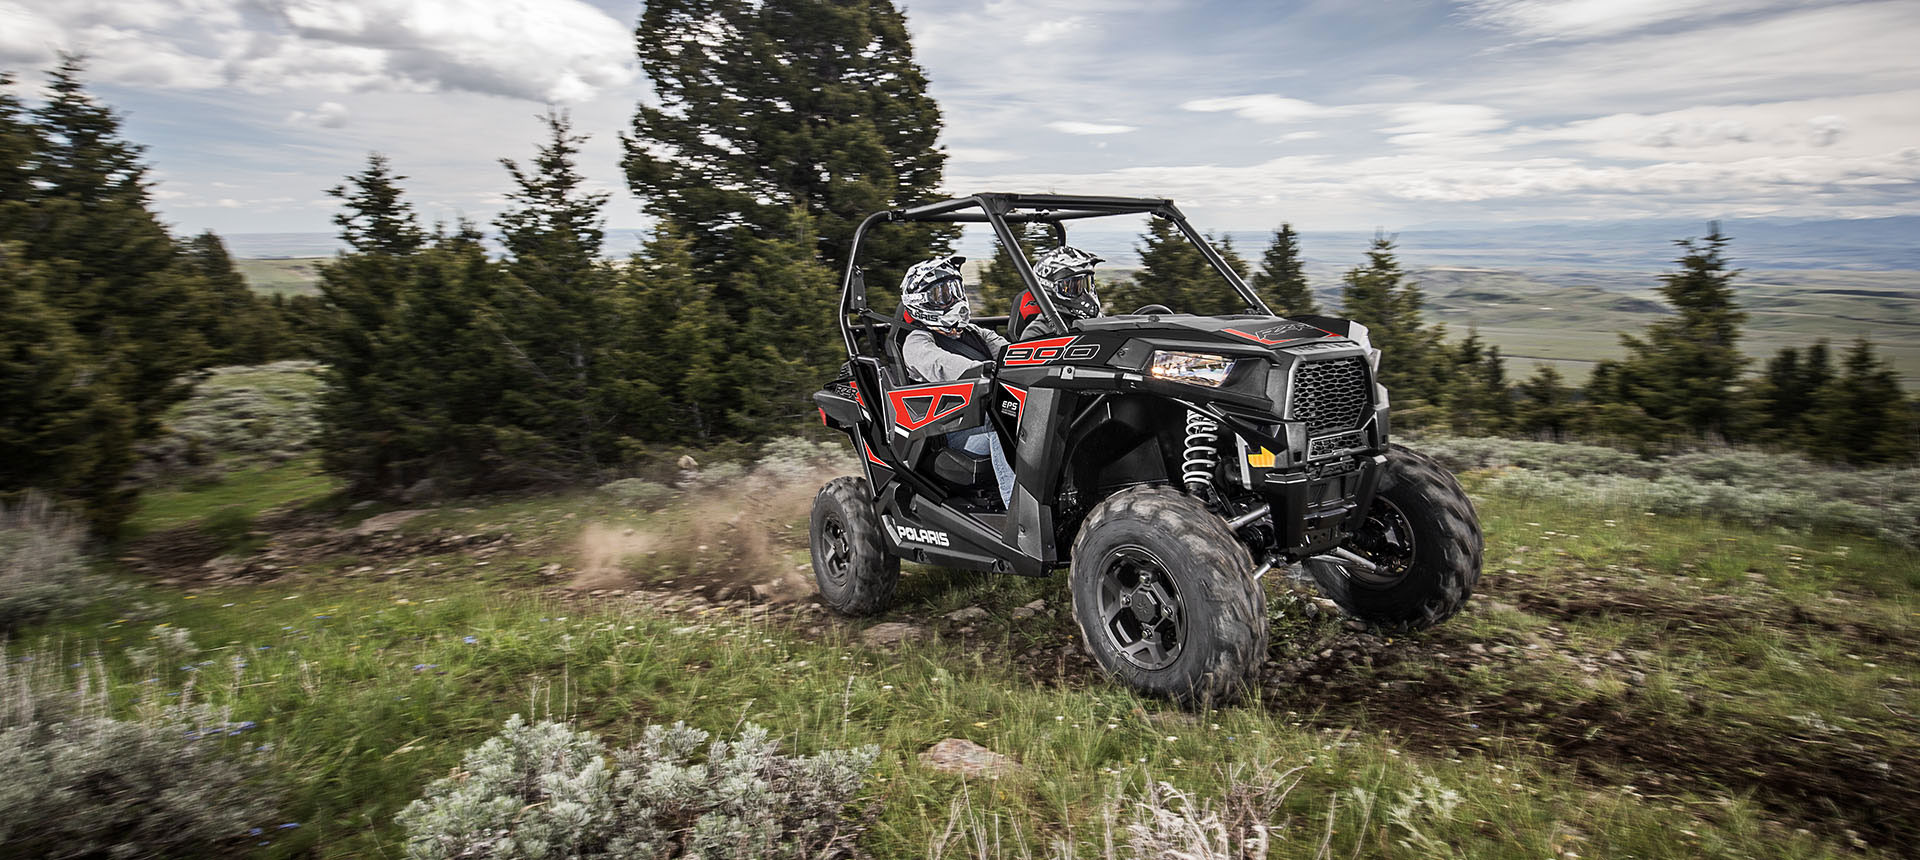 2020 RZR<sup>®</sup> Trail 900 Instagram image 1